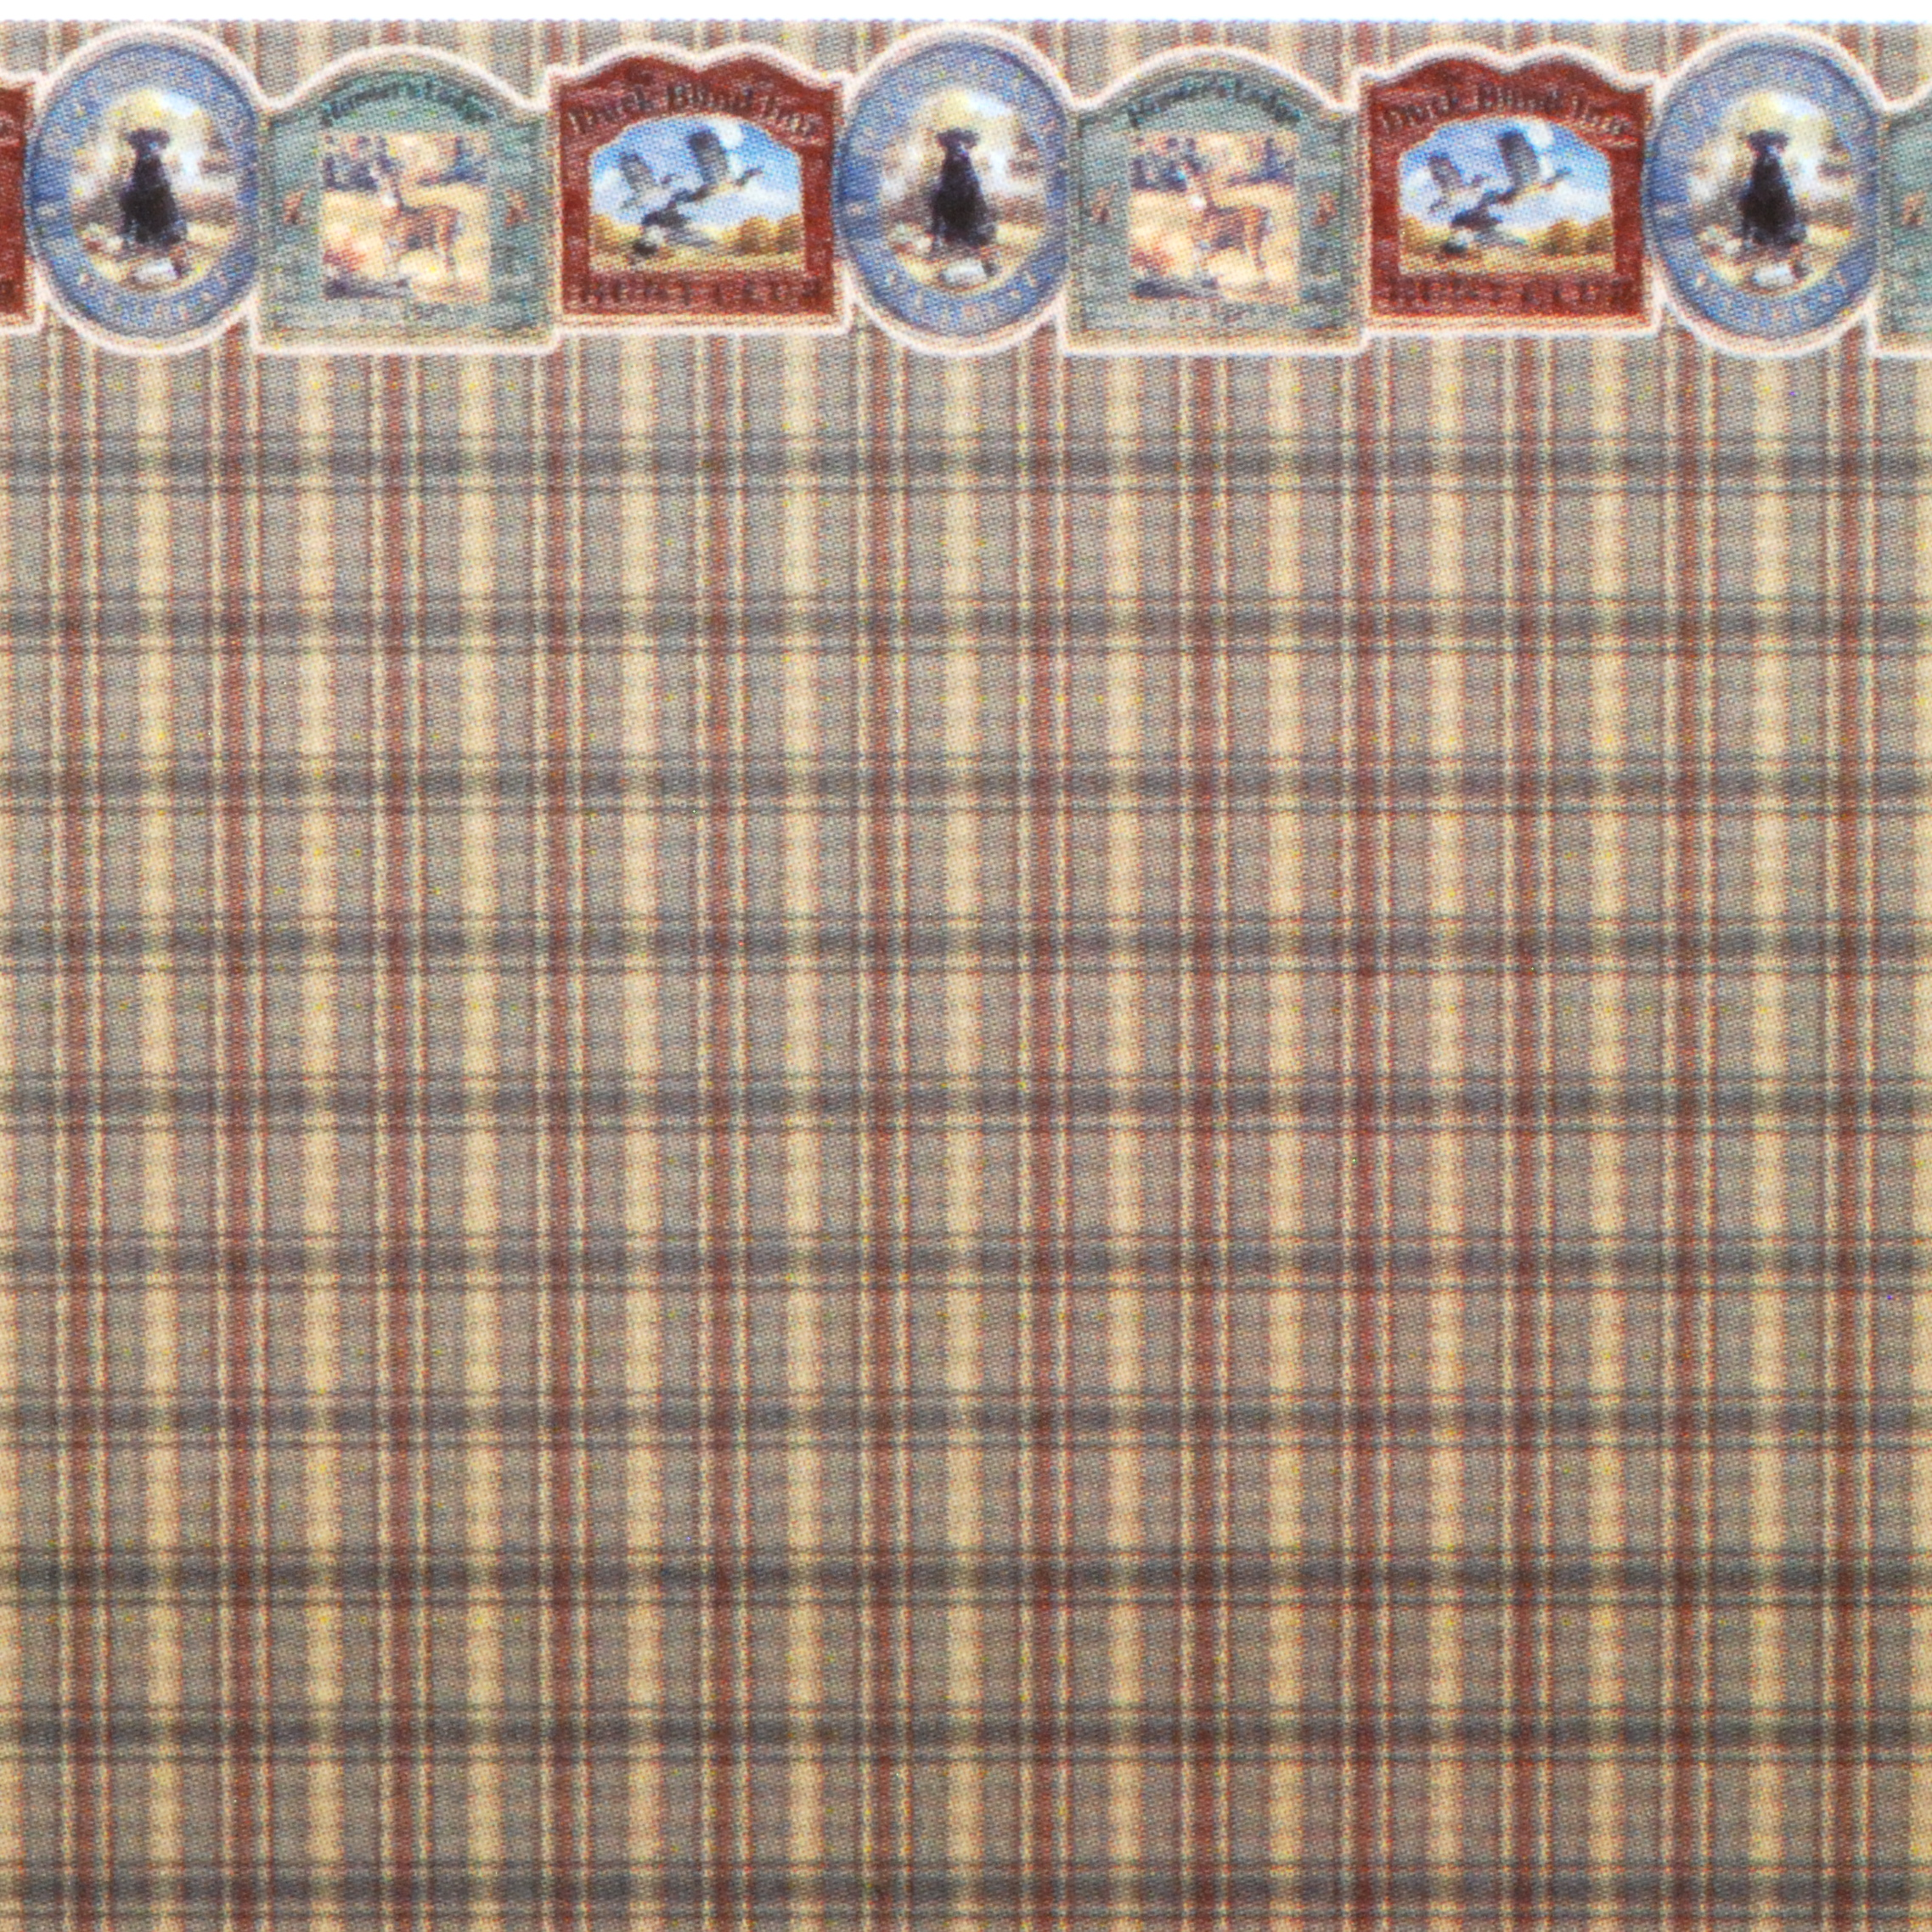 148 Wallpaper Puppies and Plaid  Stewart Dollhouse